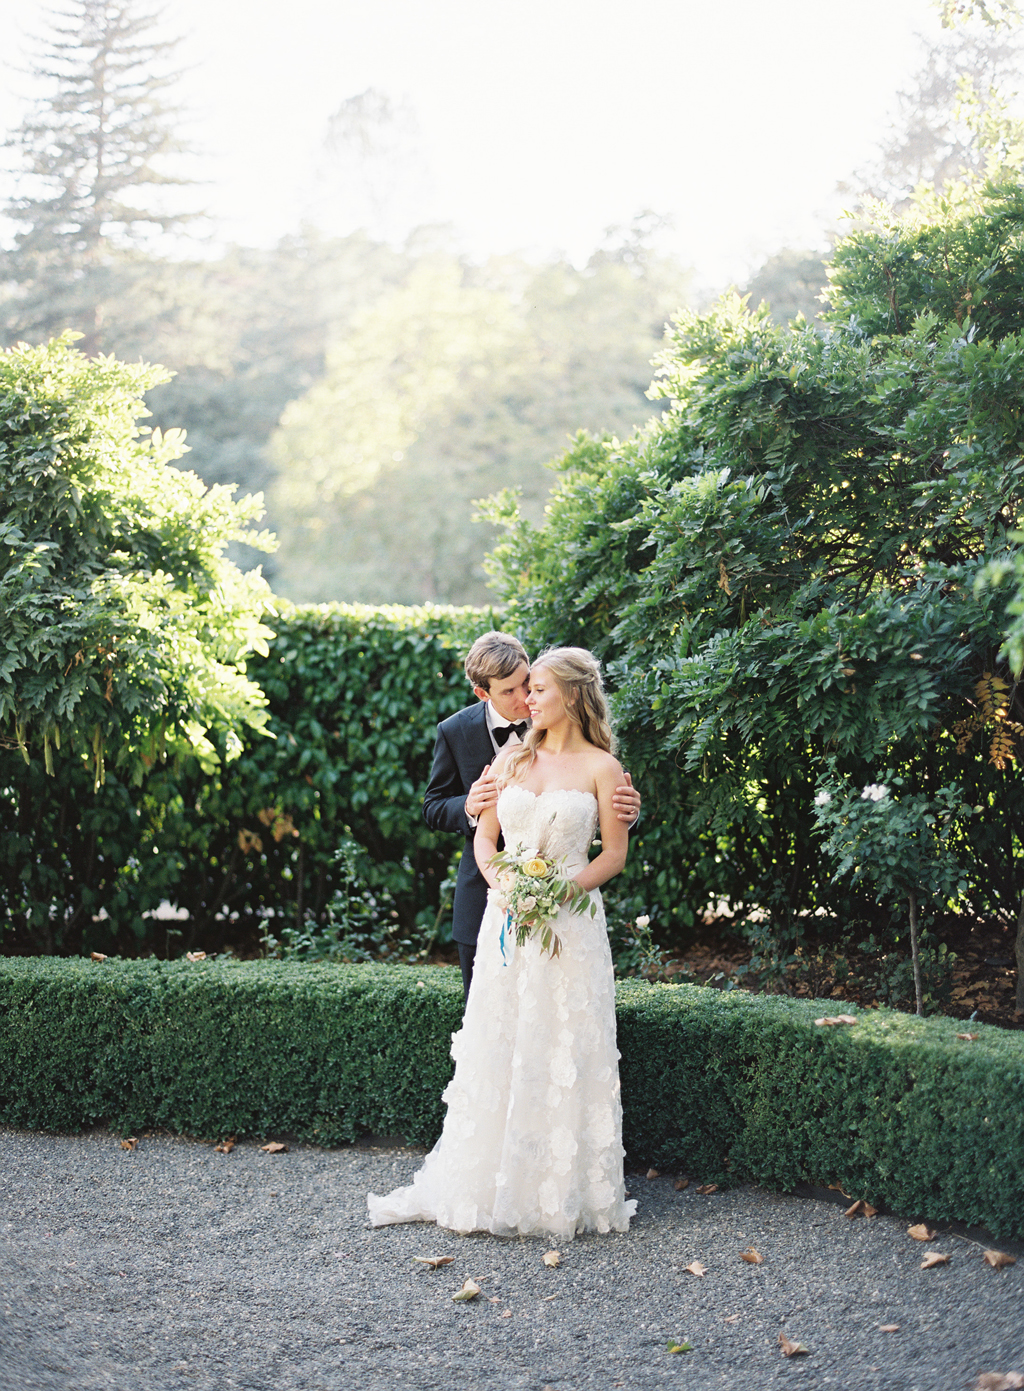 bride and groom portrait shot on fuji 400h at beaulieu gardens in Napa wine country